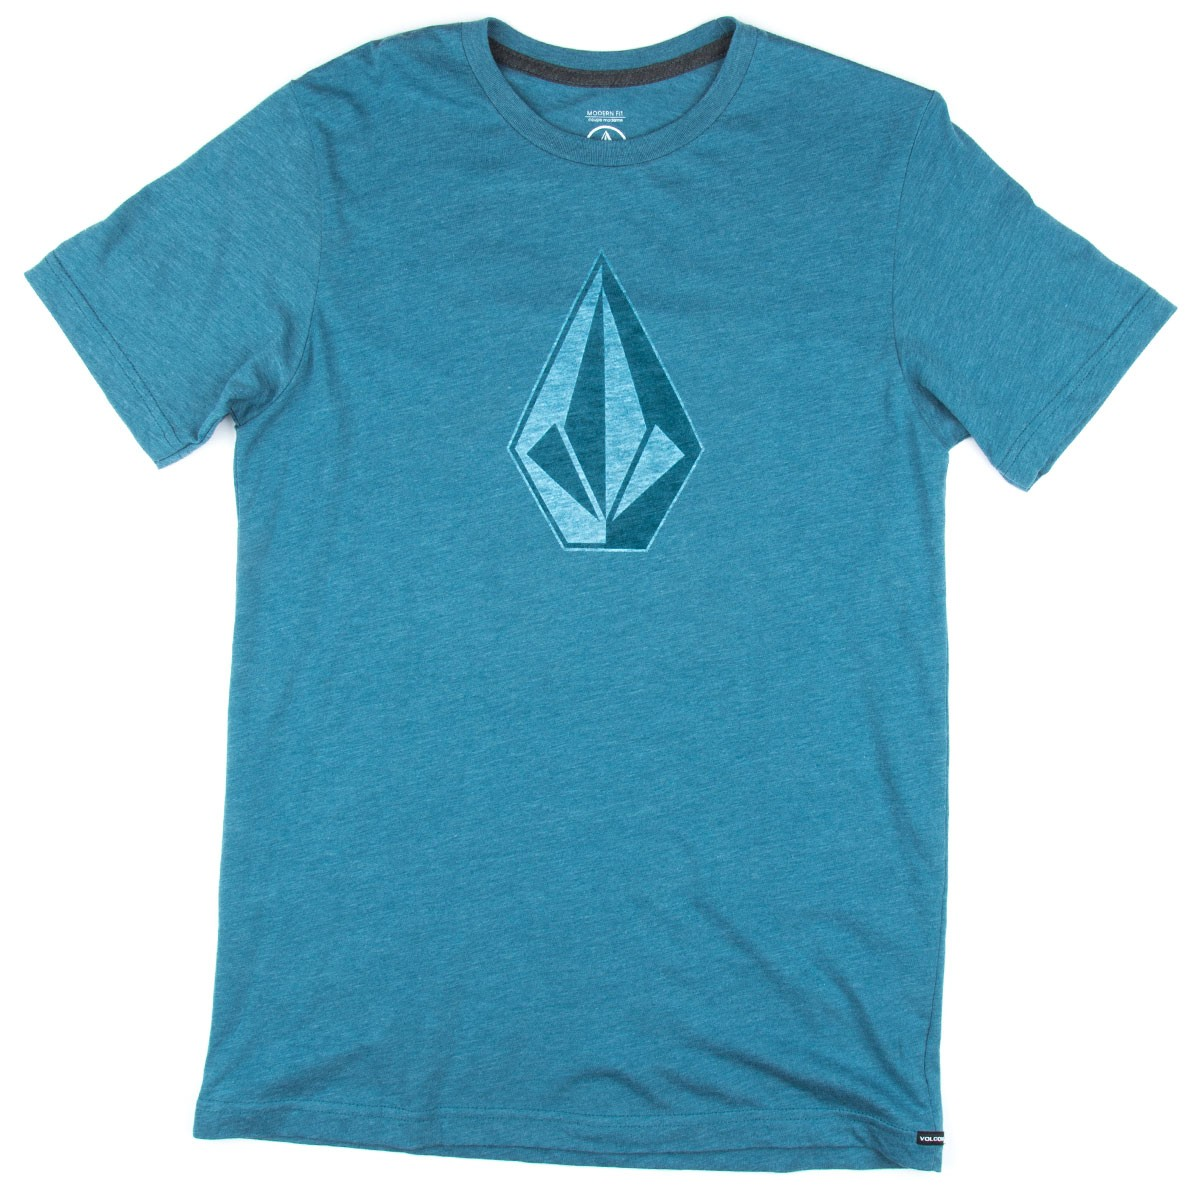 Volcom whenever t shirt sun faded indigo for Faded color t shirts